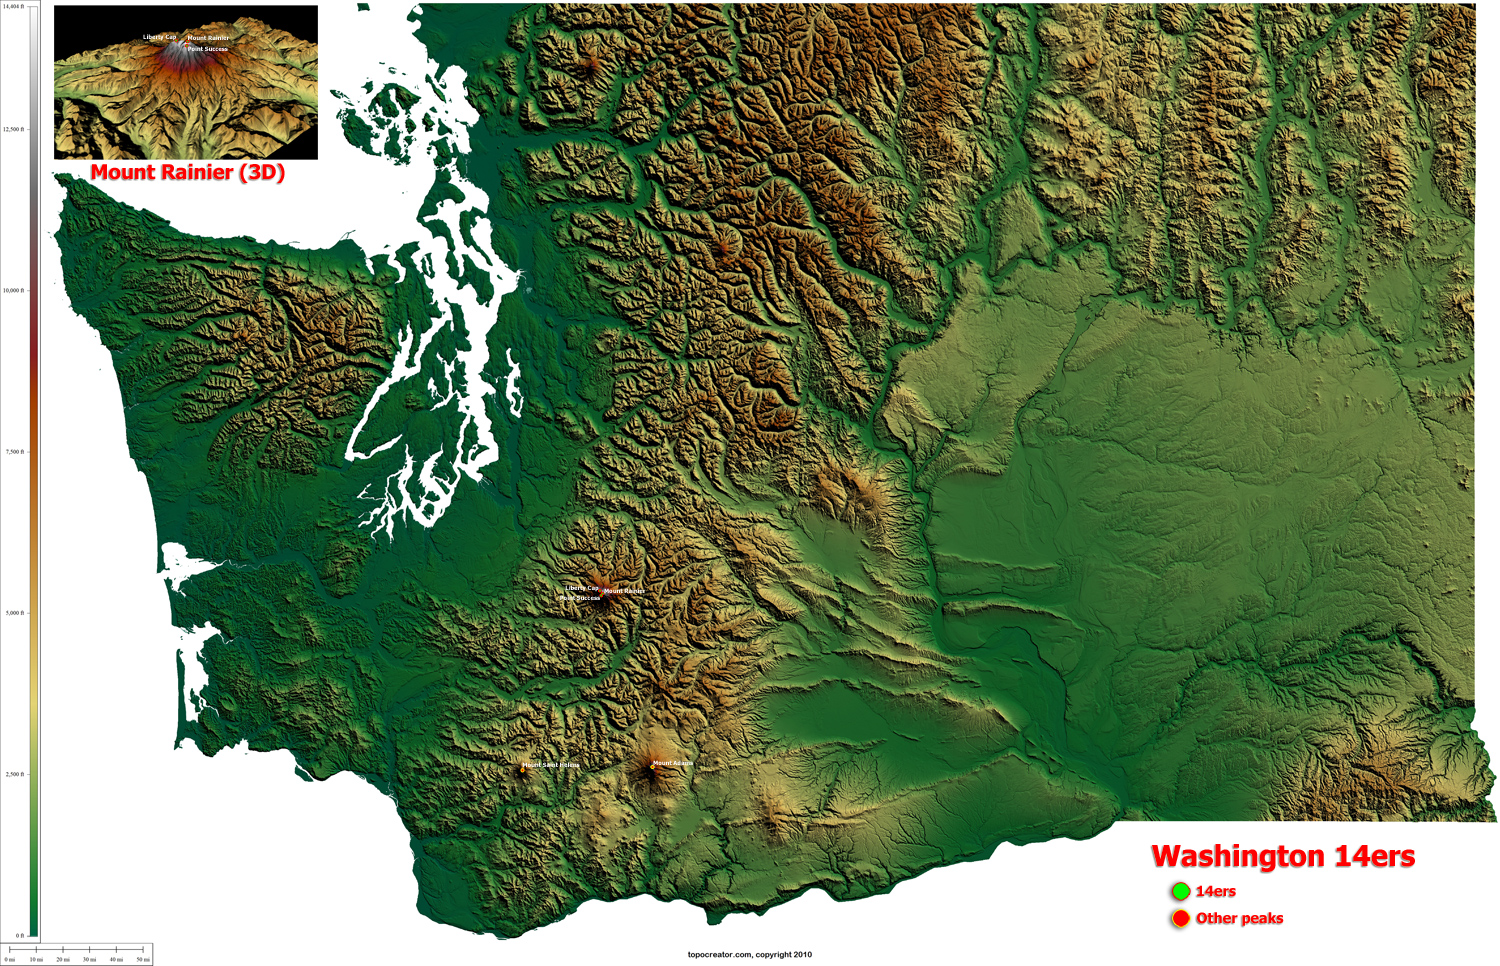 TopoCreator - Create and print your own color shaded-relief ... on washington state plat map, washington state marine map, washington state map map, washington state elevation map, washington state description, washington state map printable, washington state length, washington state aerial, washington state boundary map, washington state access, washington state highway map, washington state campsites, washington state mapquest, washington state road map screen size, washington state lidar mapping, washington state google map, washington state trails map, washington state water map, washington state soccer field,